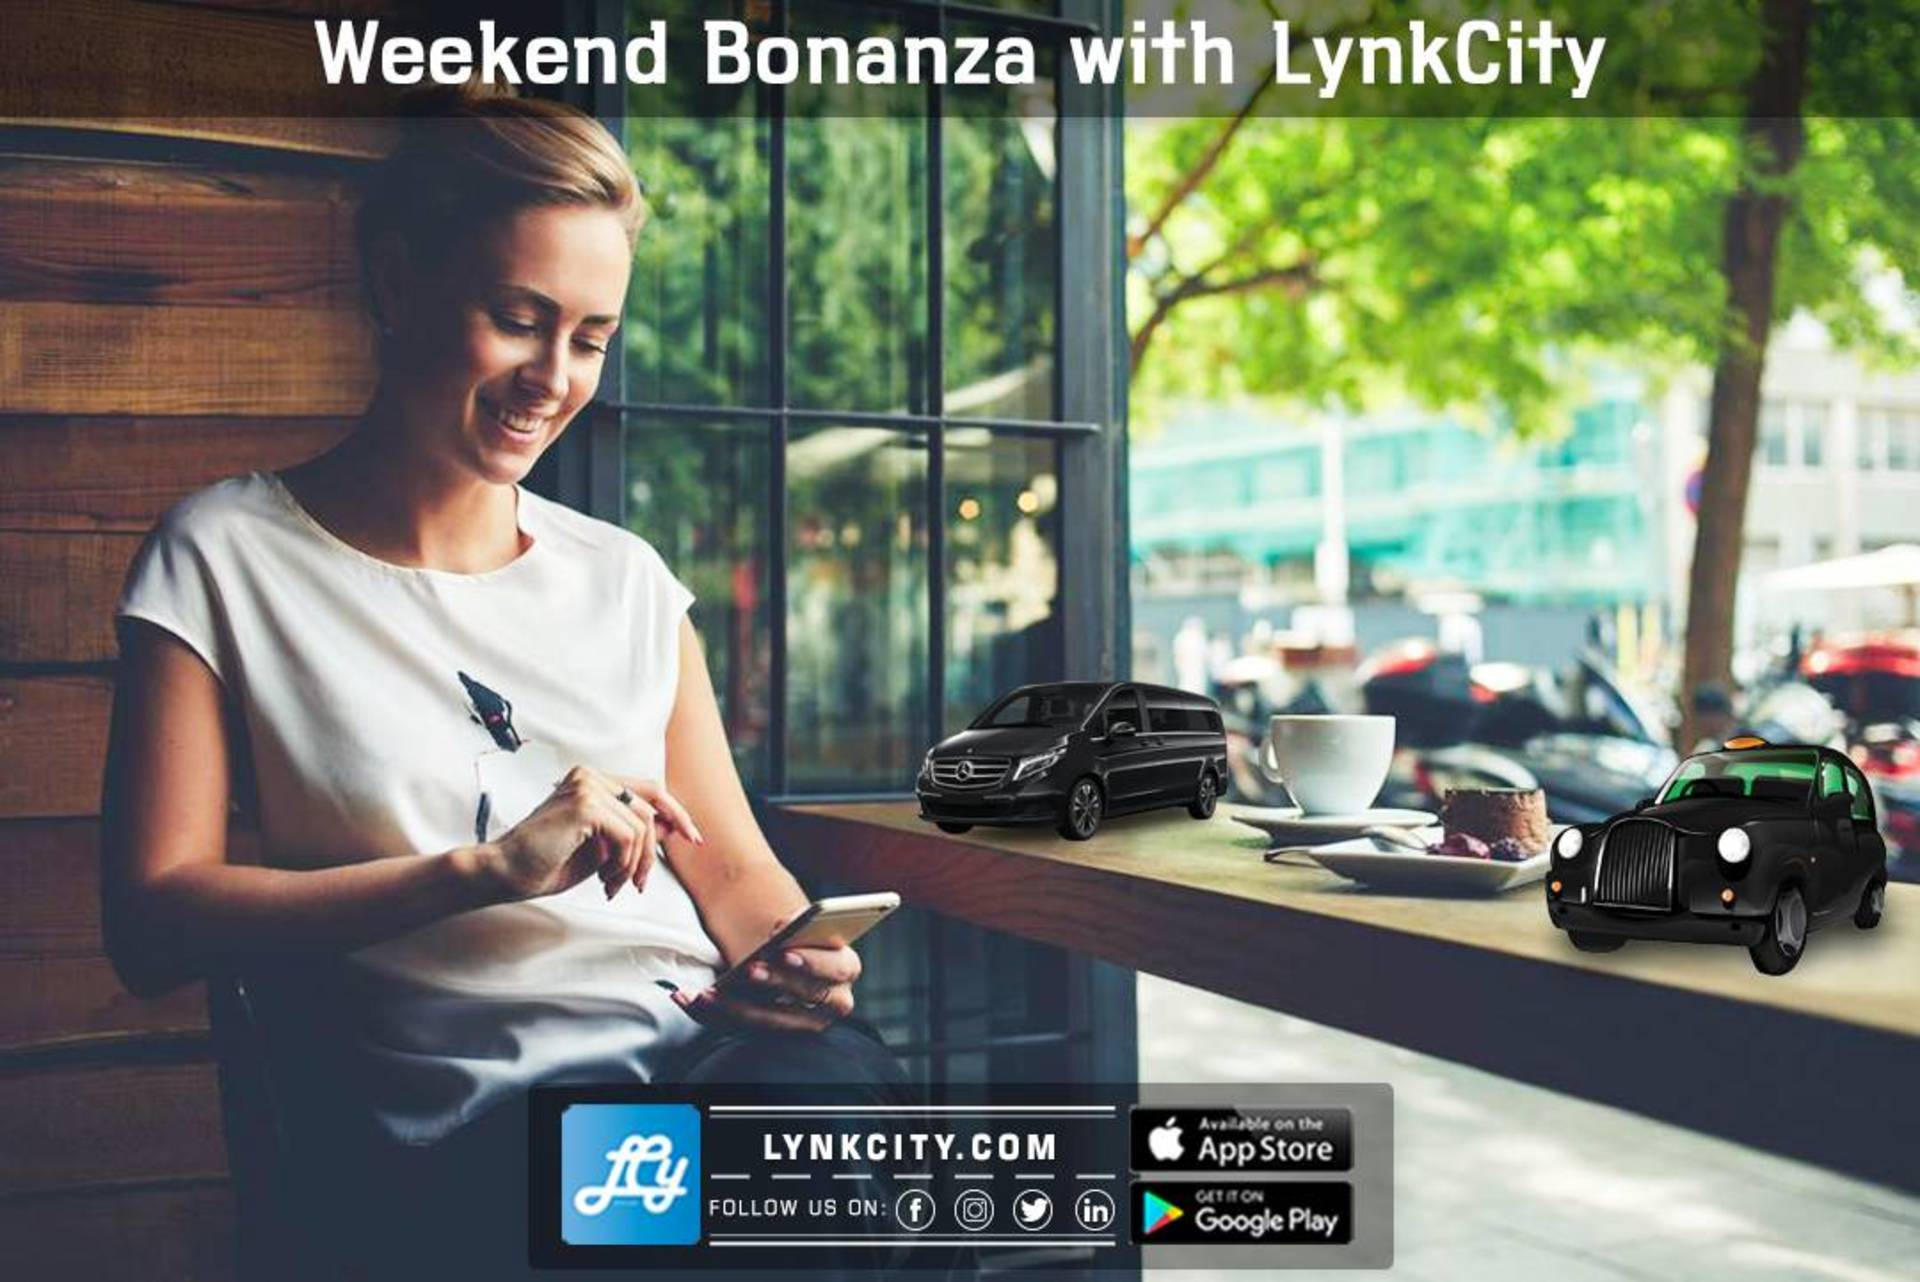 Weekend Bonanza with LynkCity. image